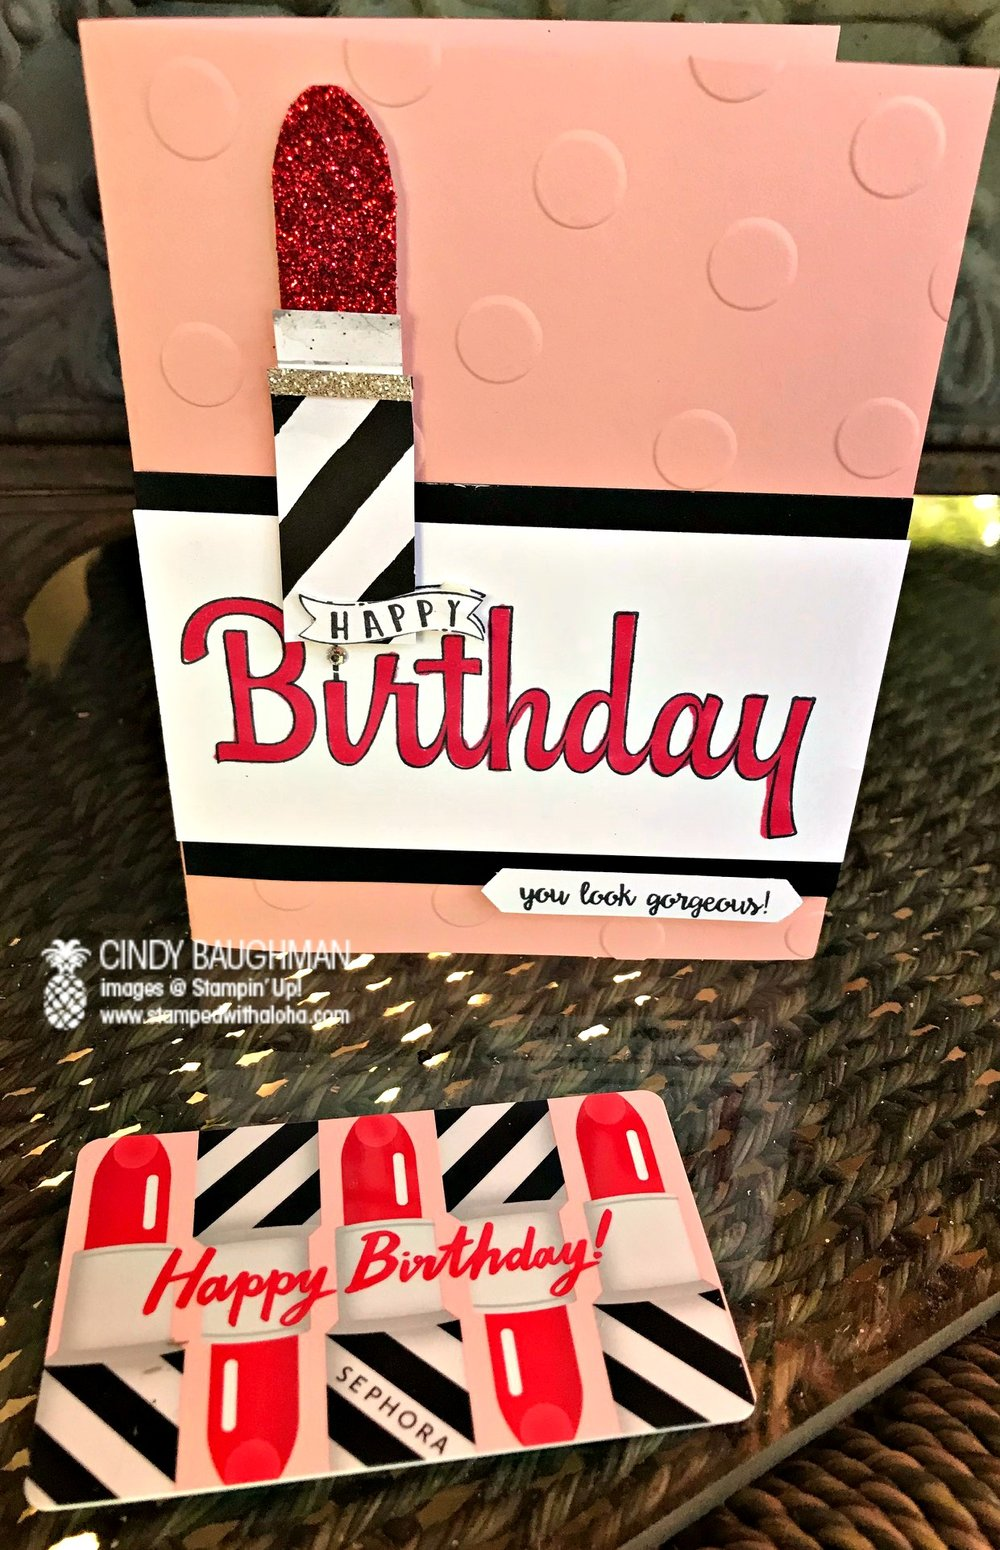 Lovely Lipstick card - www.stampedwithaloha.com